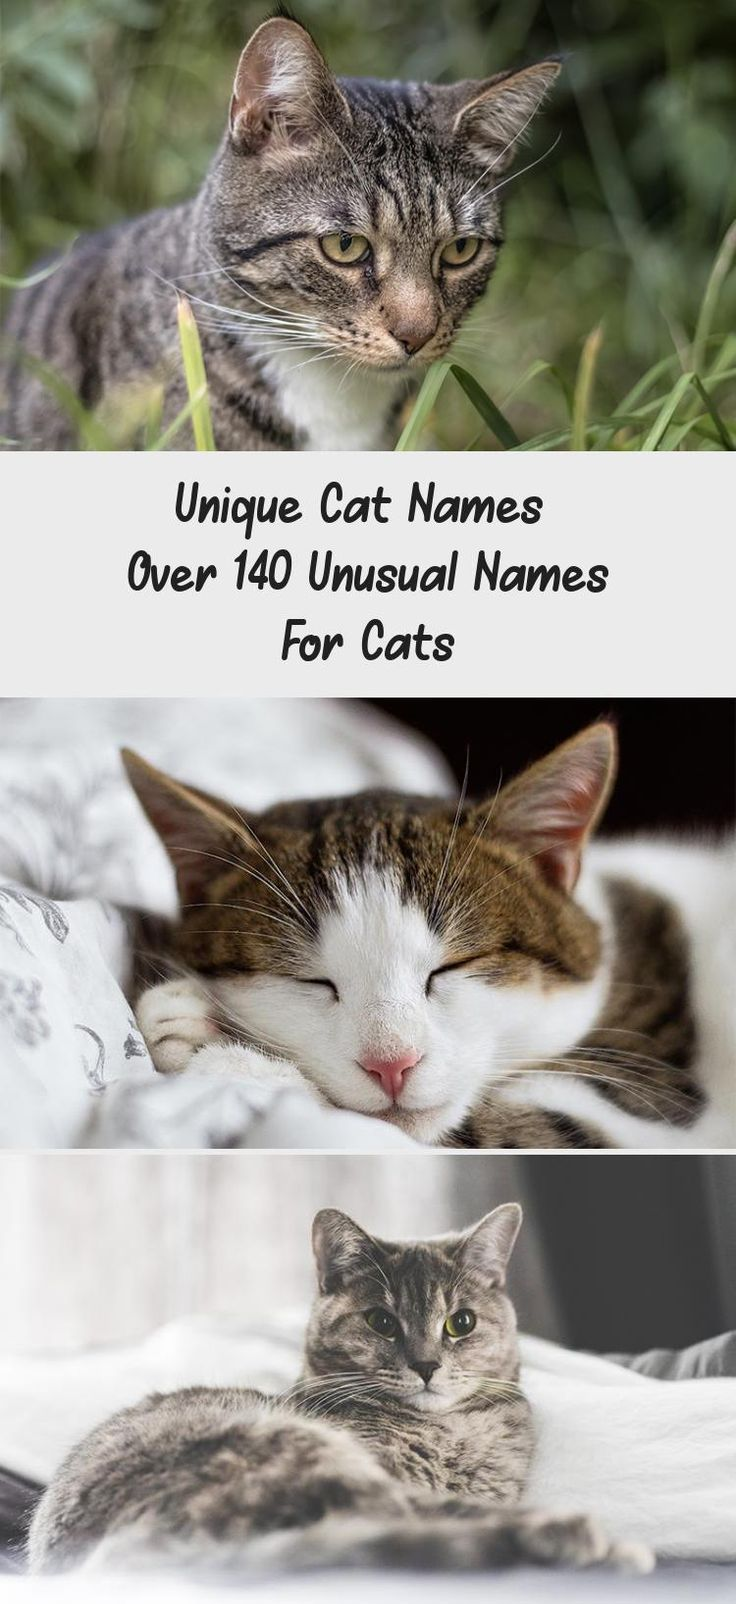 Unique Cat Names Over 140 Unusual Names For in 2020